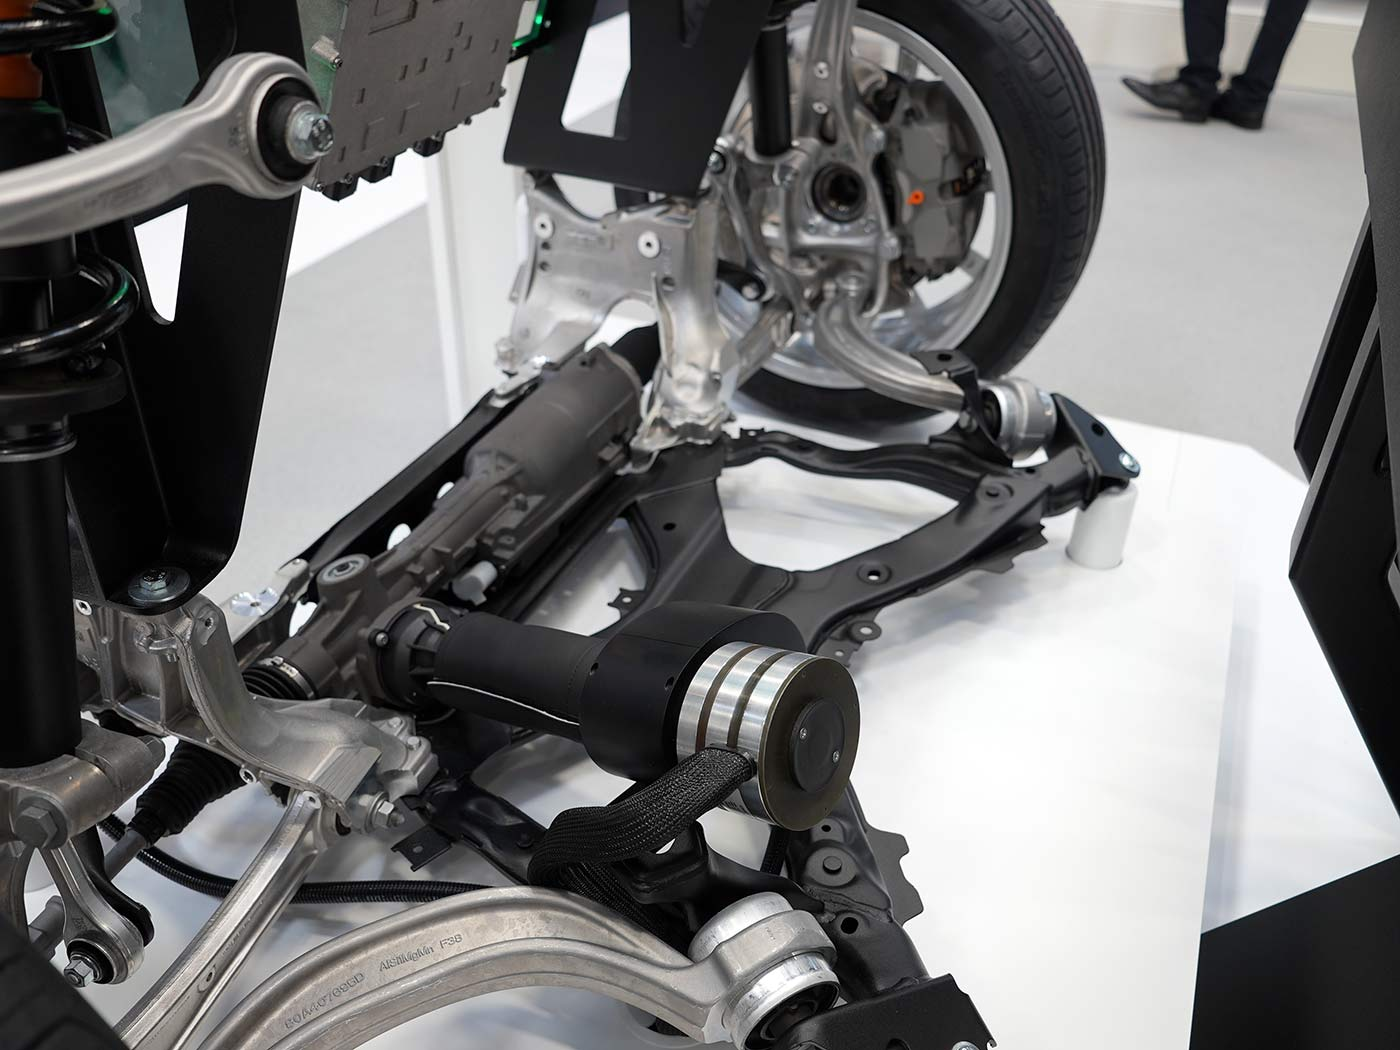 schaeffer group spacedrive drive by wire steering assembly closeup